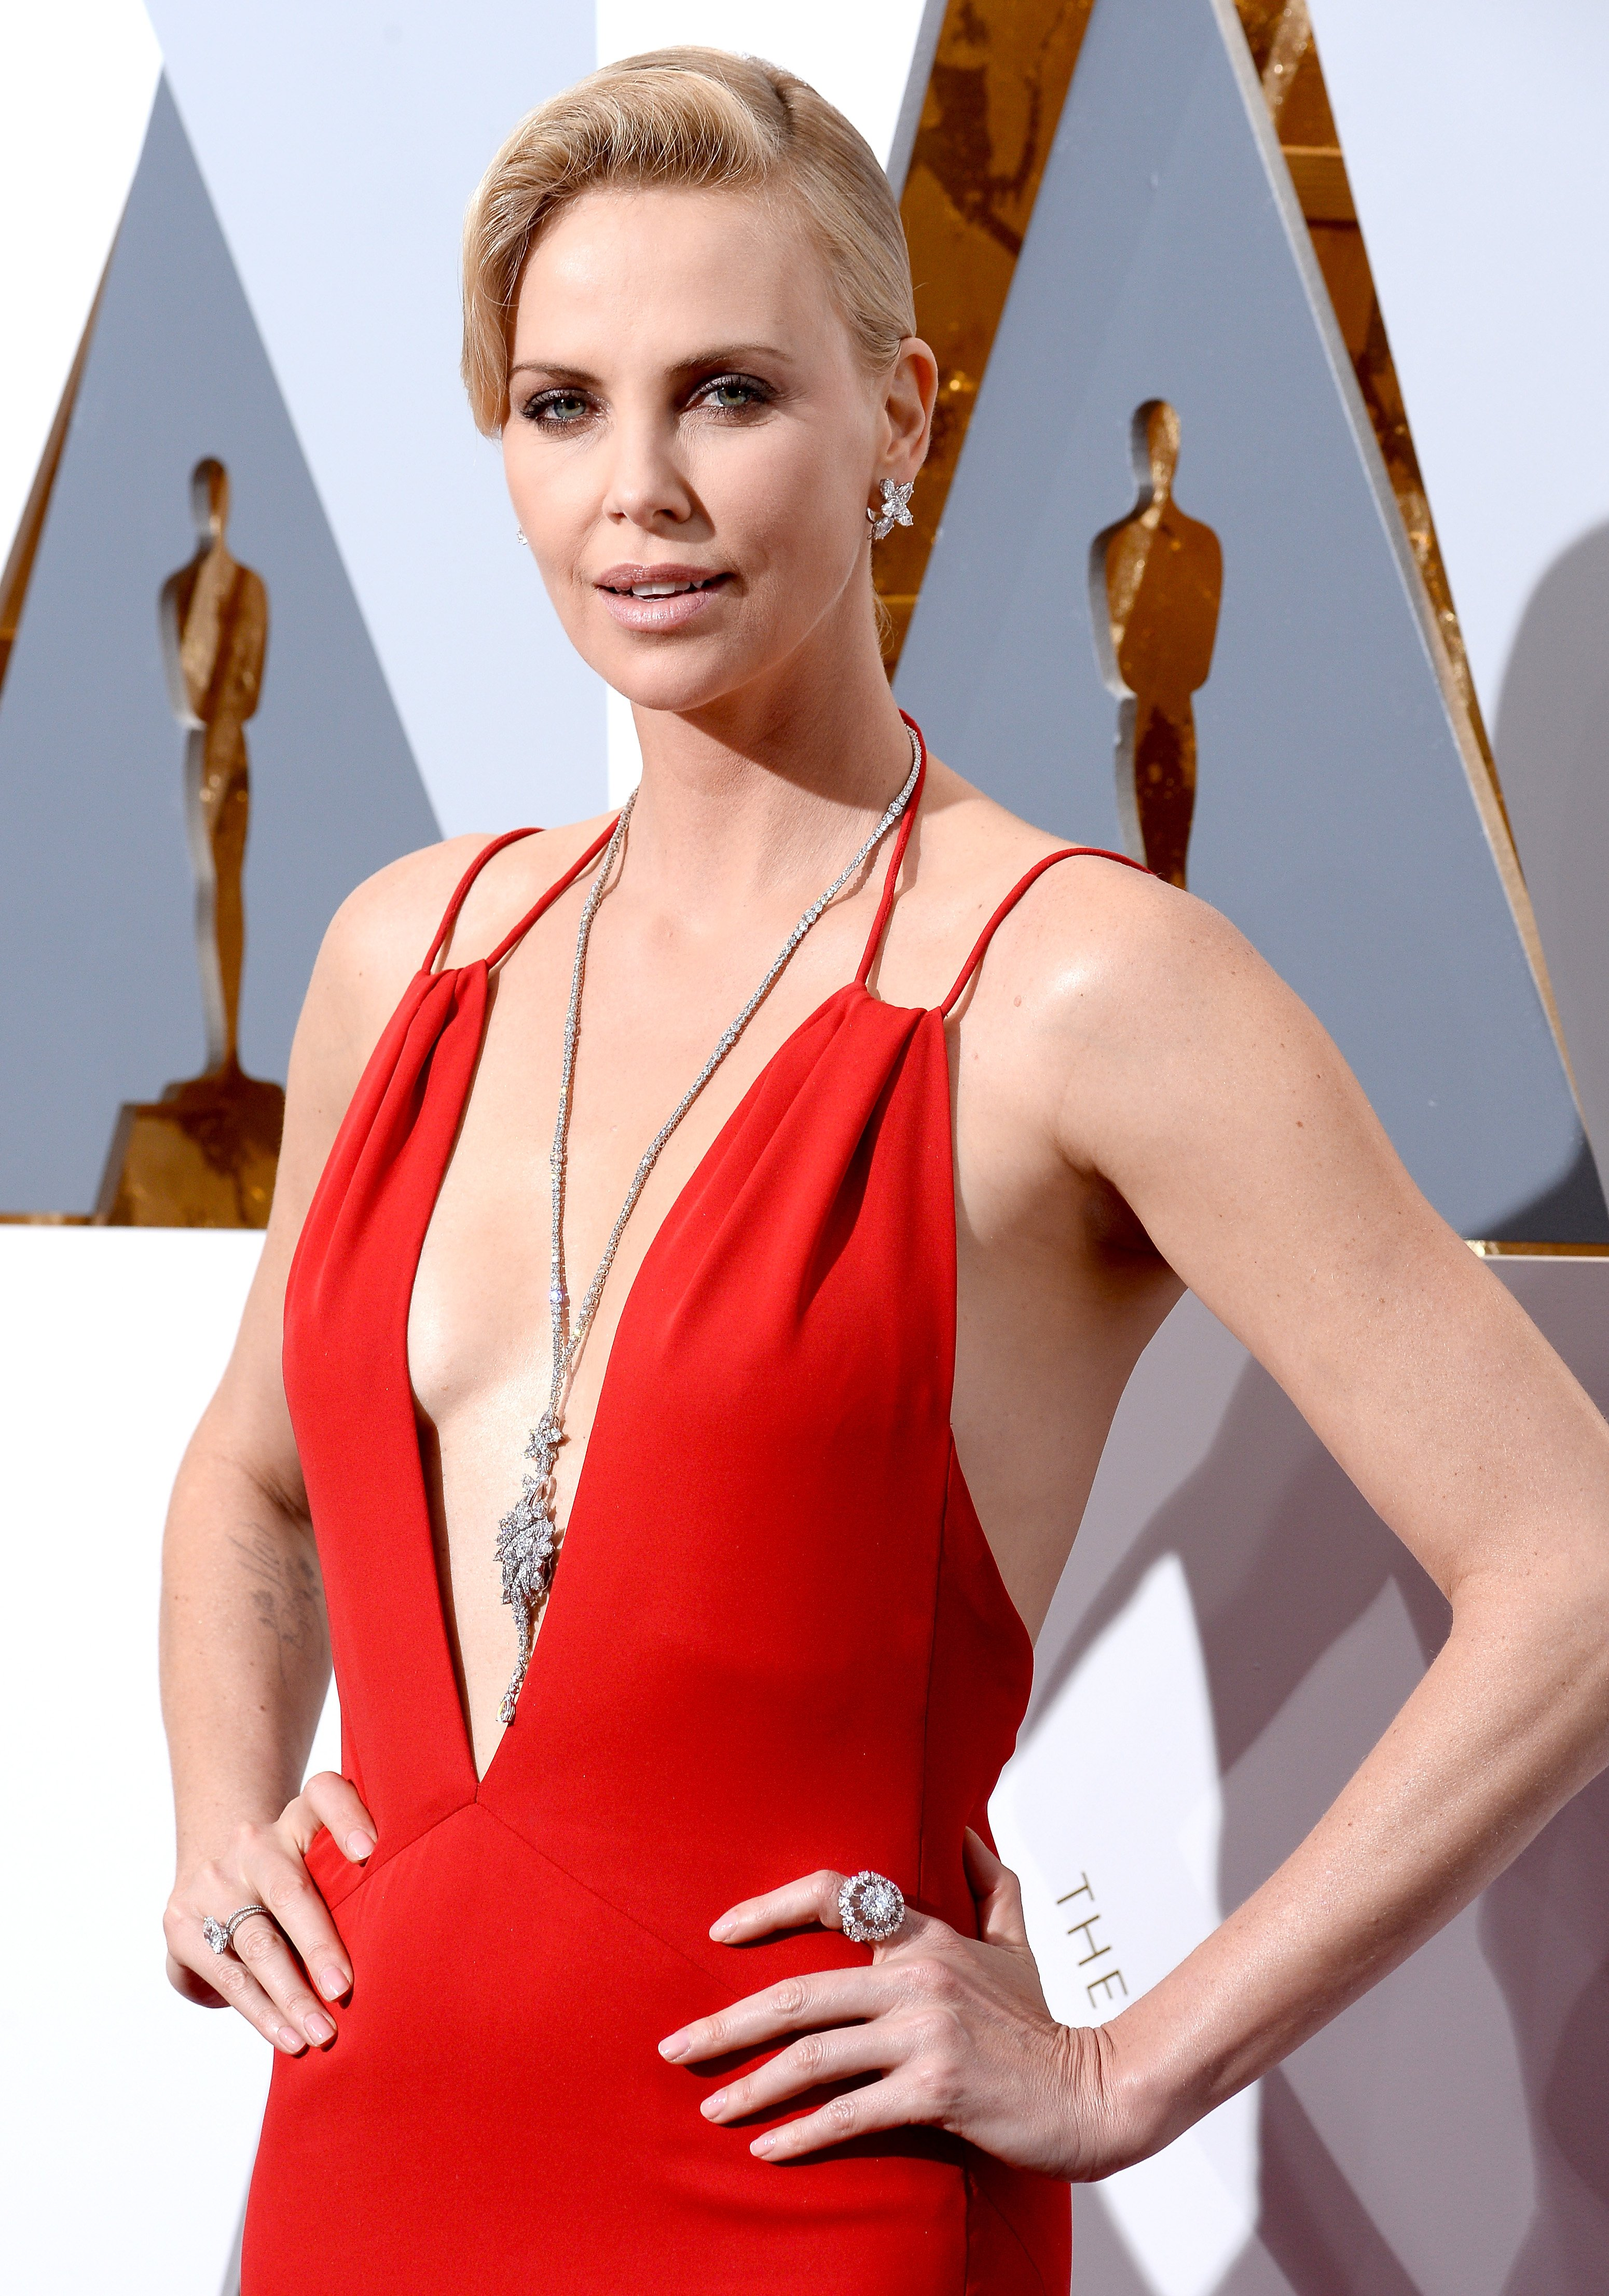 Charlize Theron in a red Dior dress at the 2016 Oscars | Photo: Getty Images